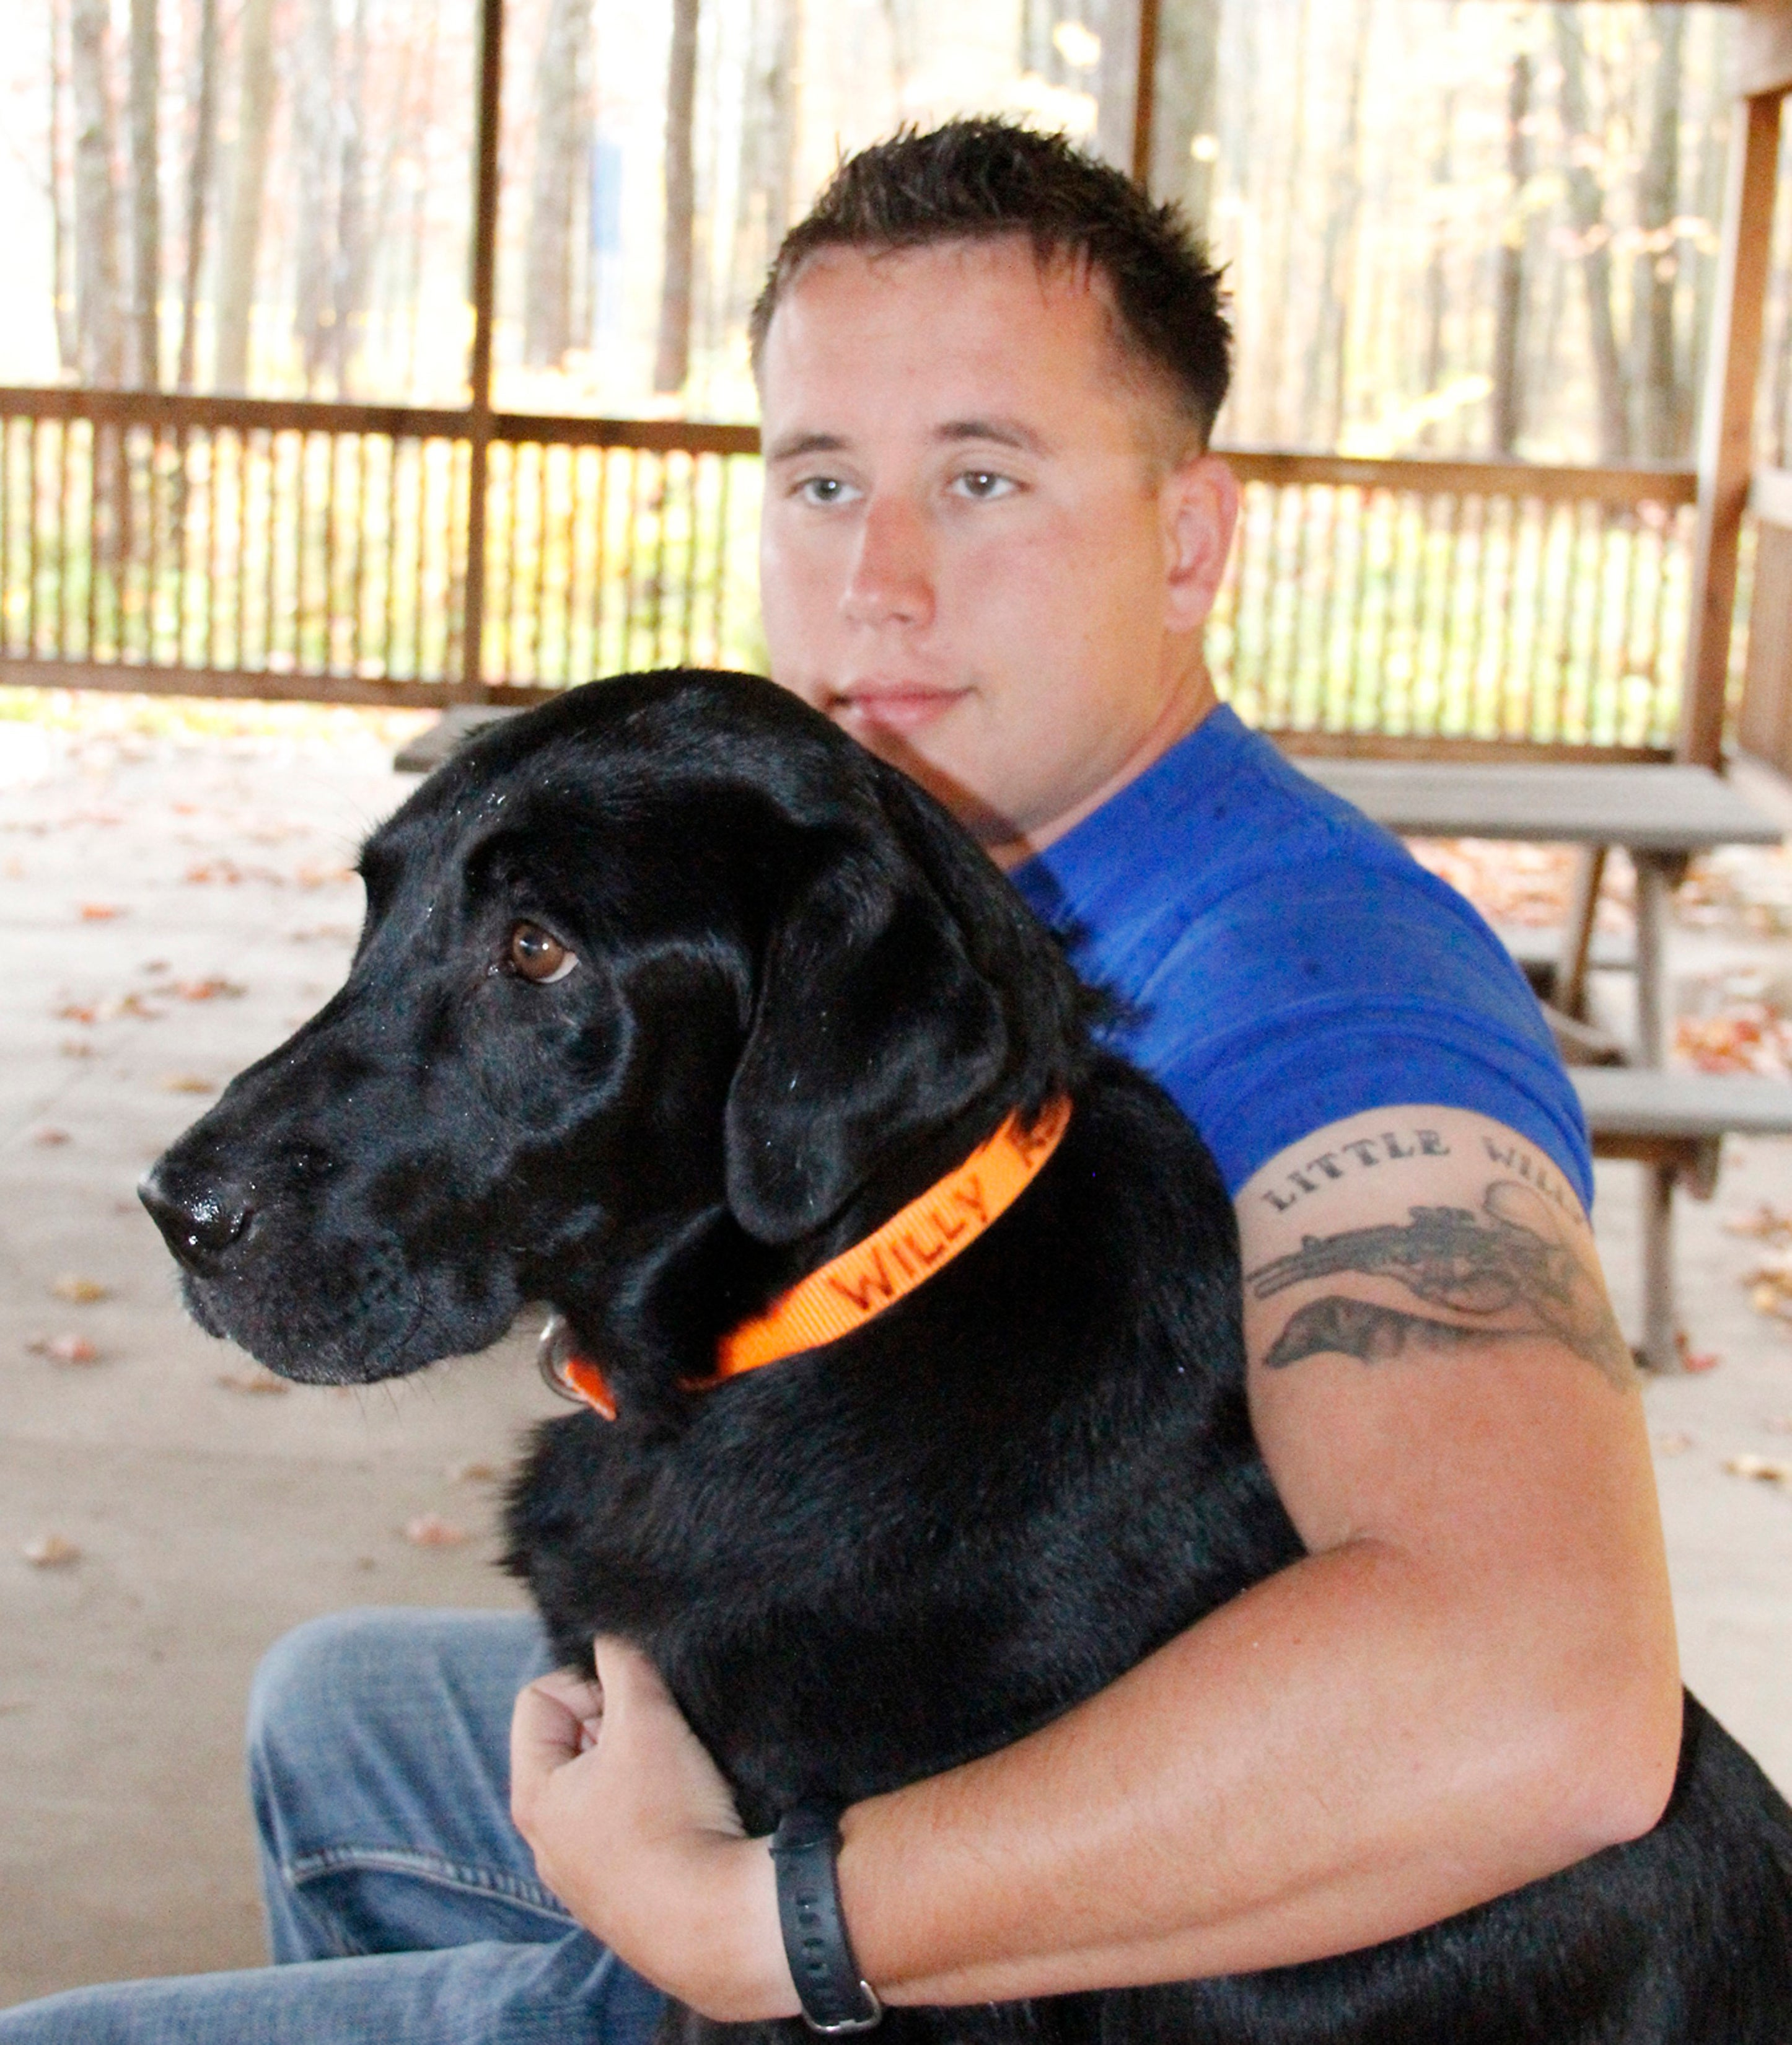 Afghanistan Vet Adopts Bomb-sniffing Dog